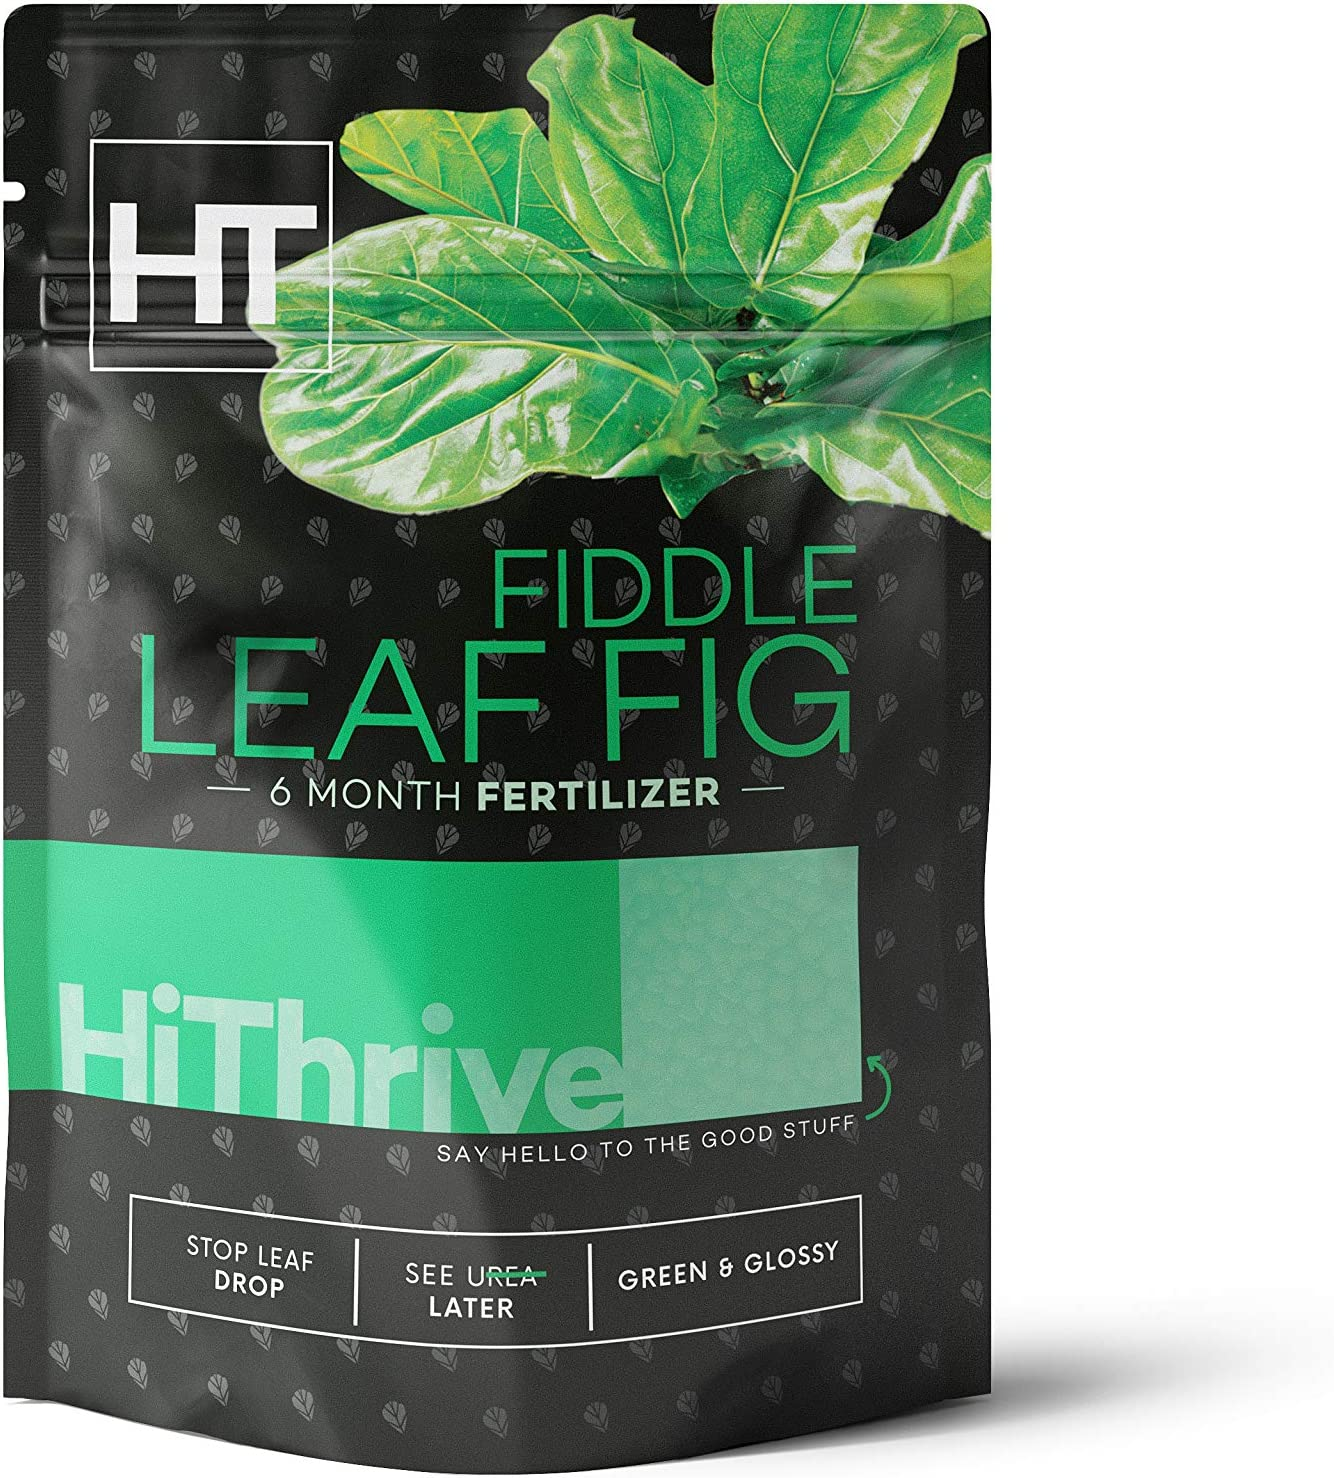 Fiddle Leaf Fig Fertilizer (8oz) - Liquid Plant Food for Ficus Plants and Figs - Improves Overall Health of Live Ficus Trees - Indoor + Outdoor Formula